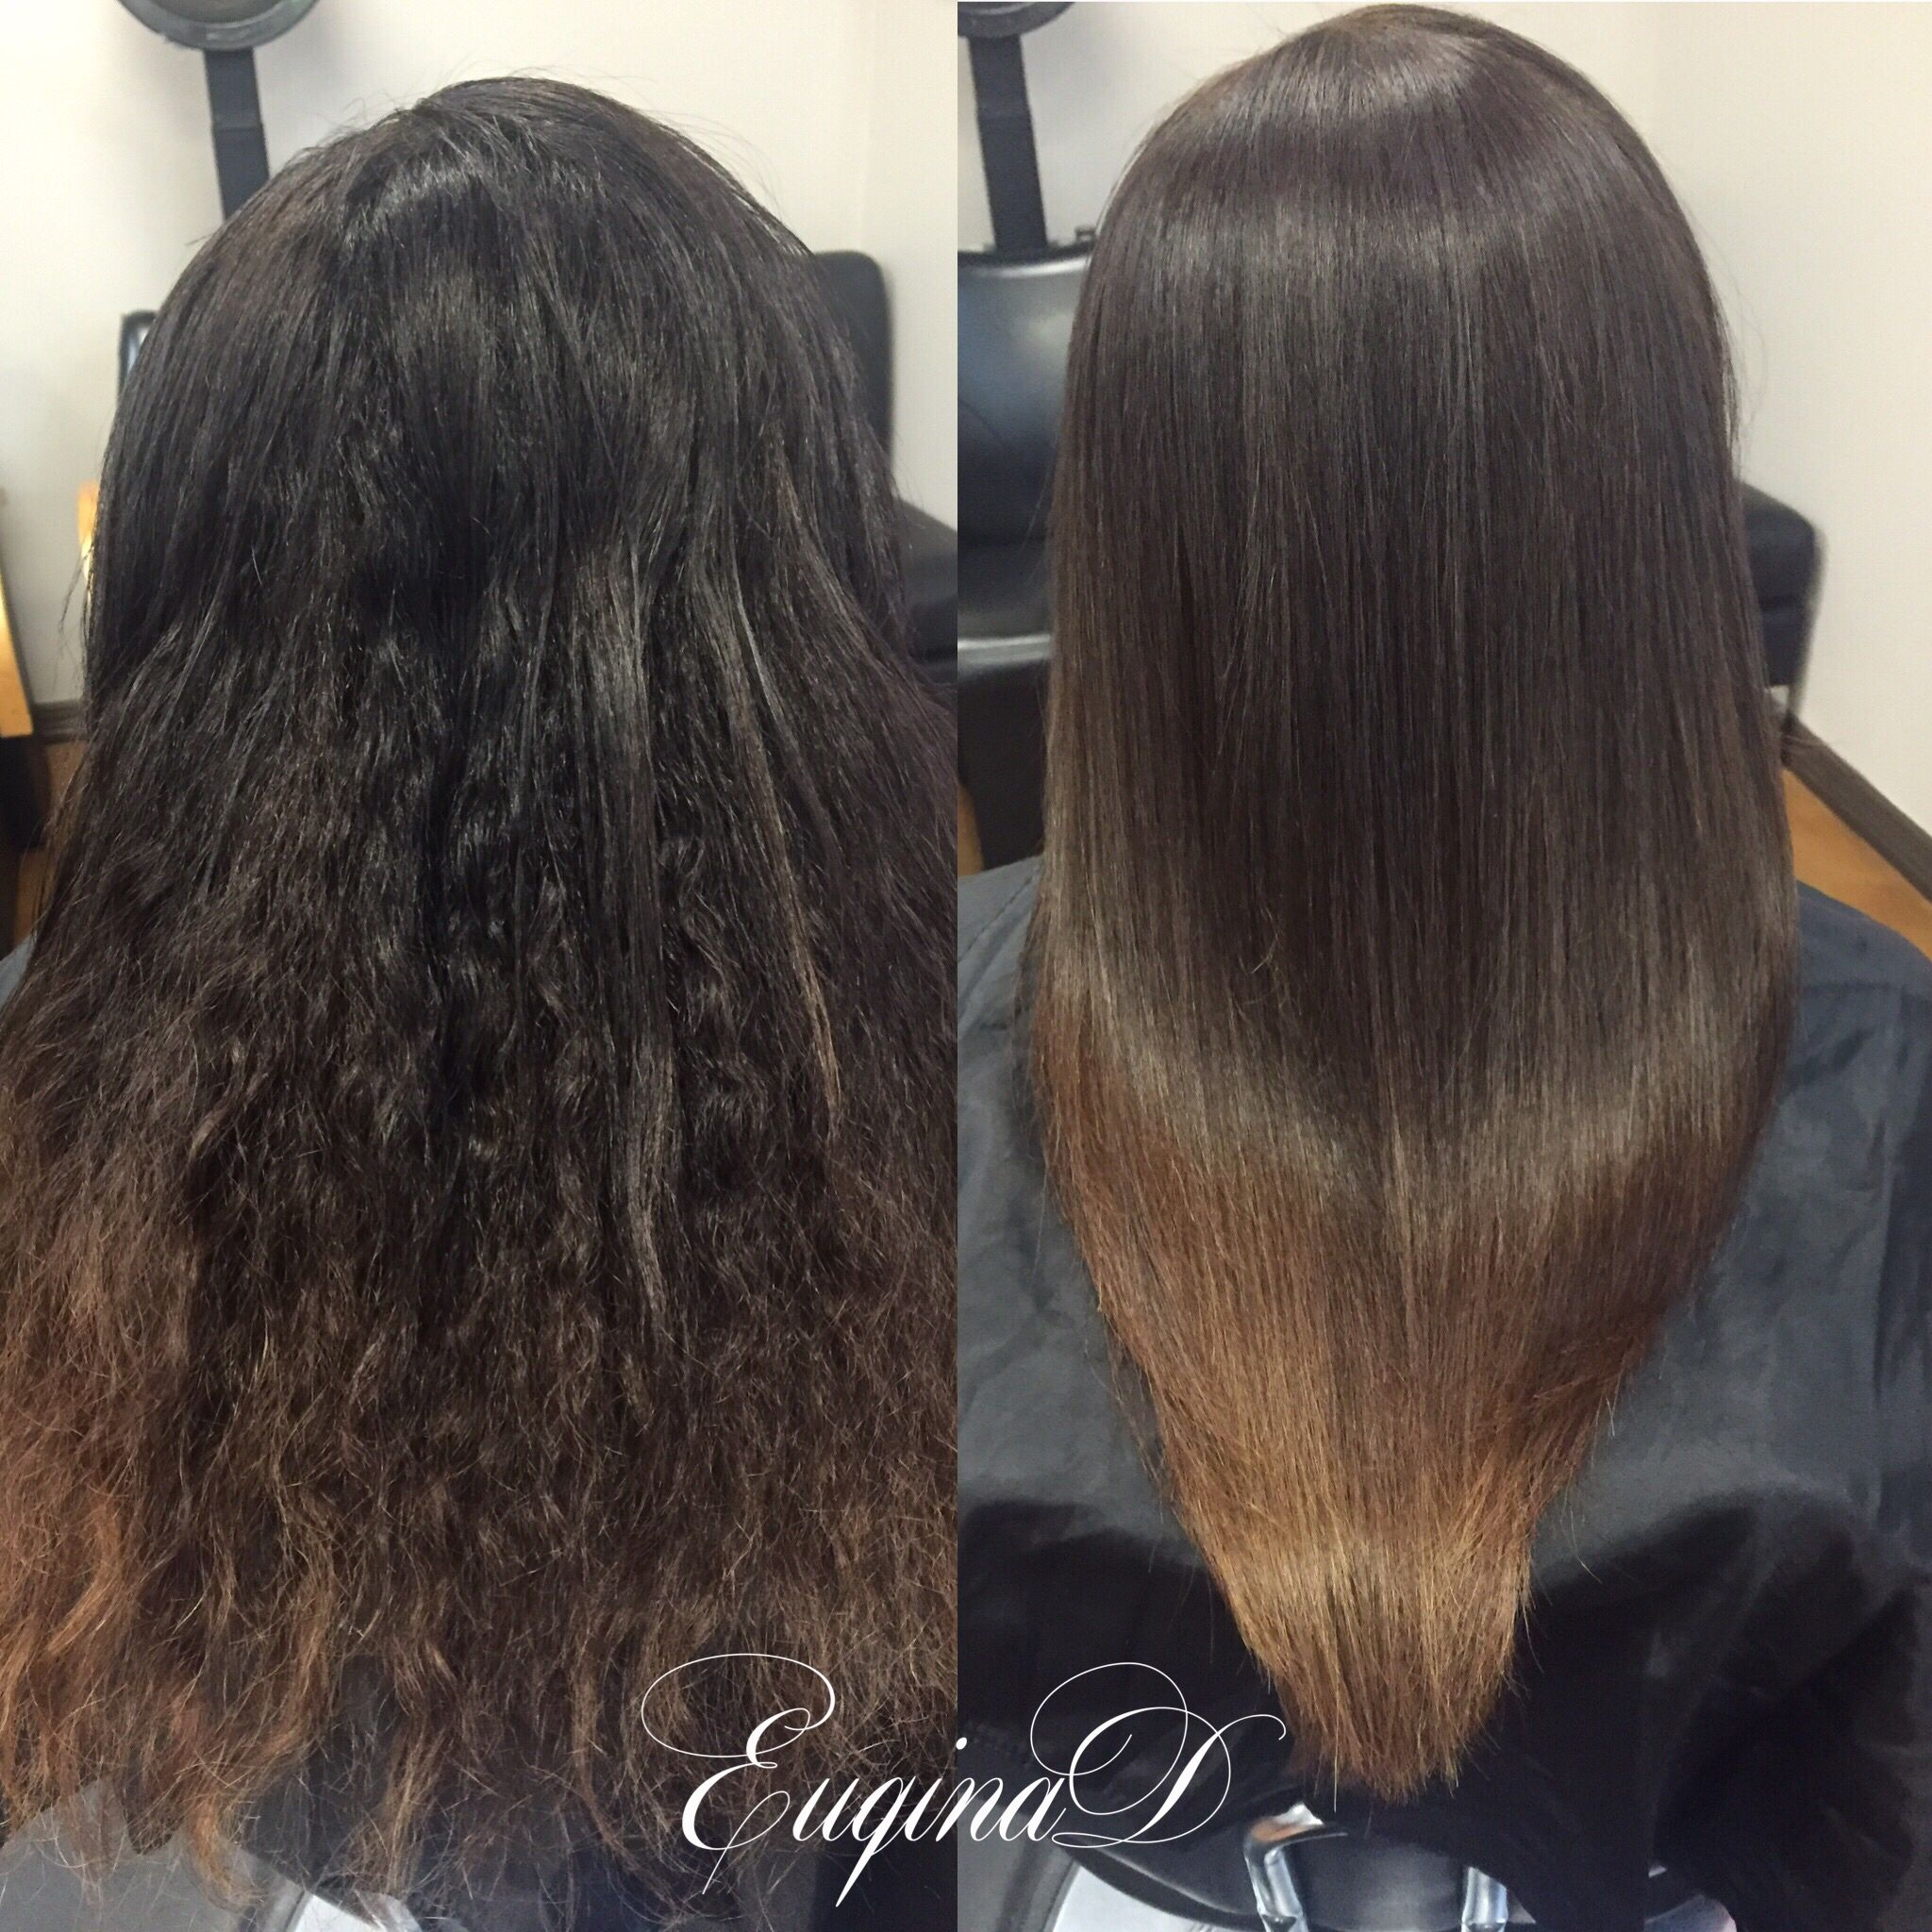 Brazilian Blowout On Curly Hair Ombre By Euqinad Ombre Curly Hair Ombre Hair Hair Tutorial